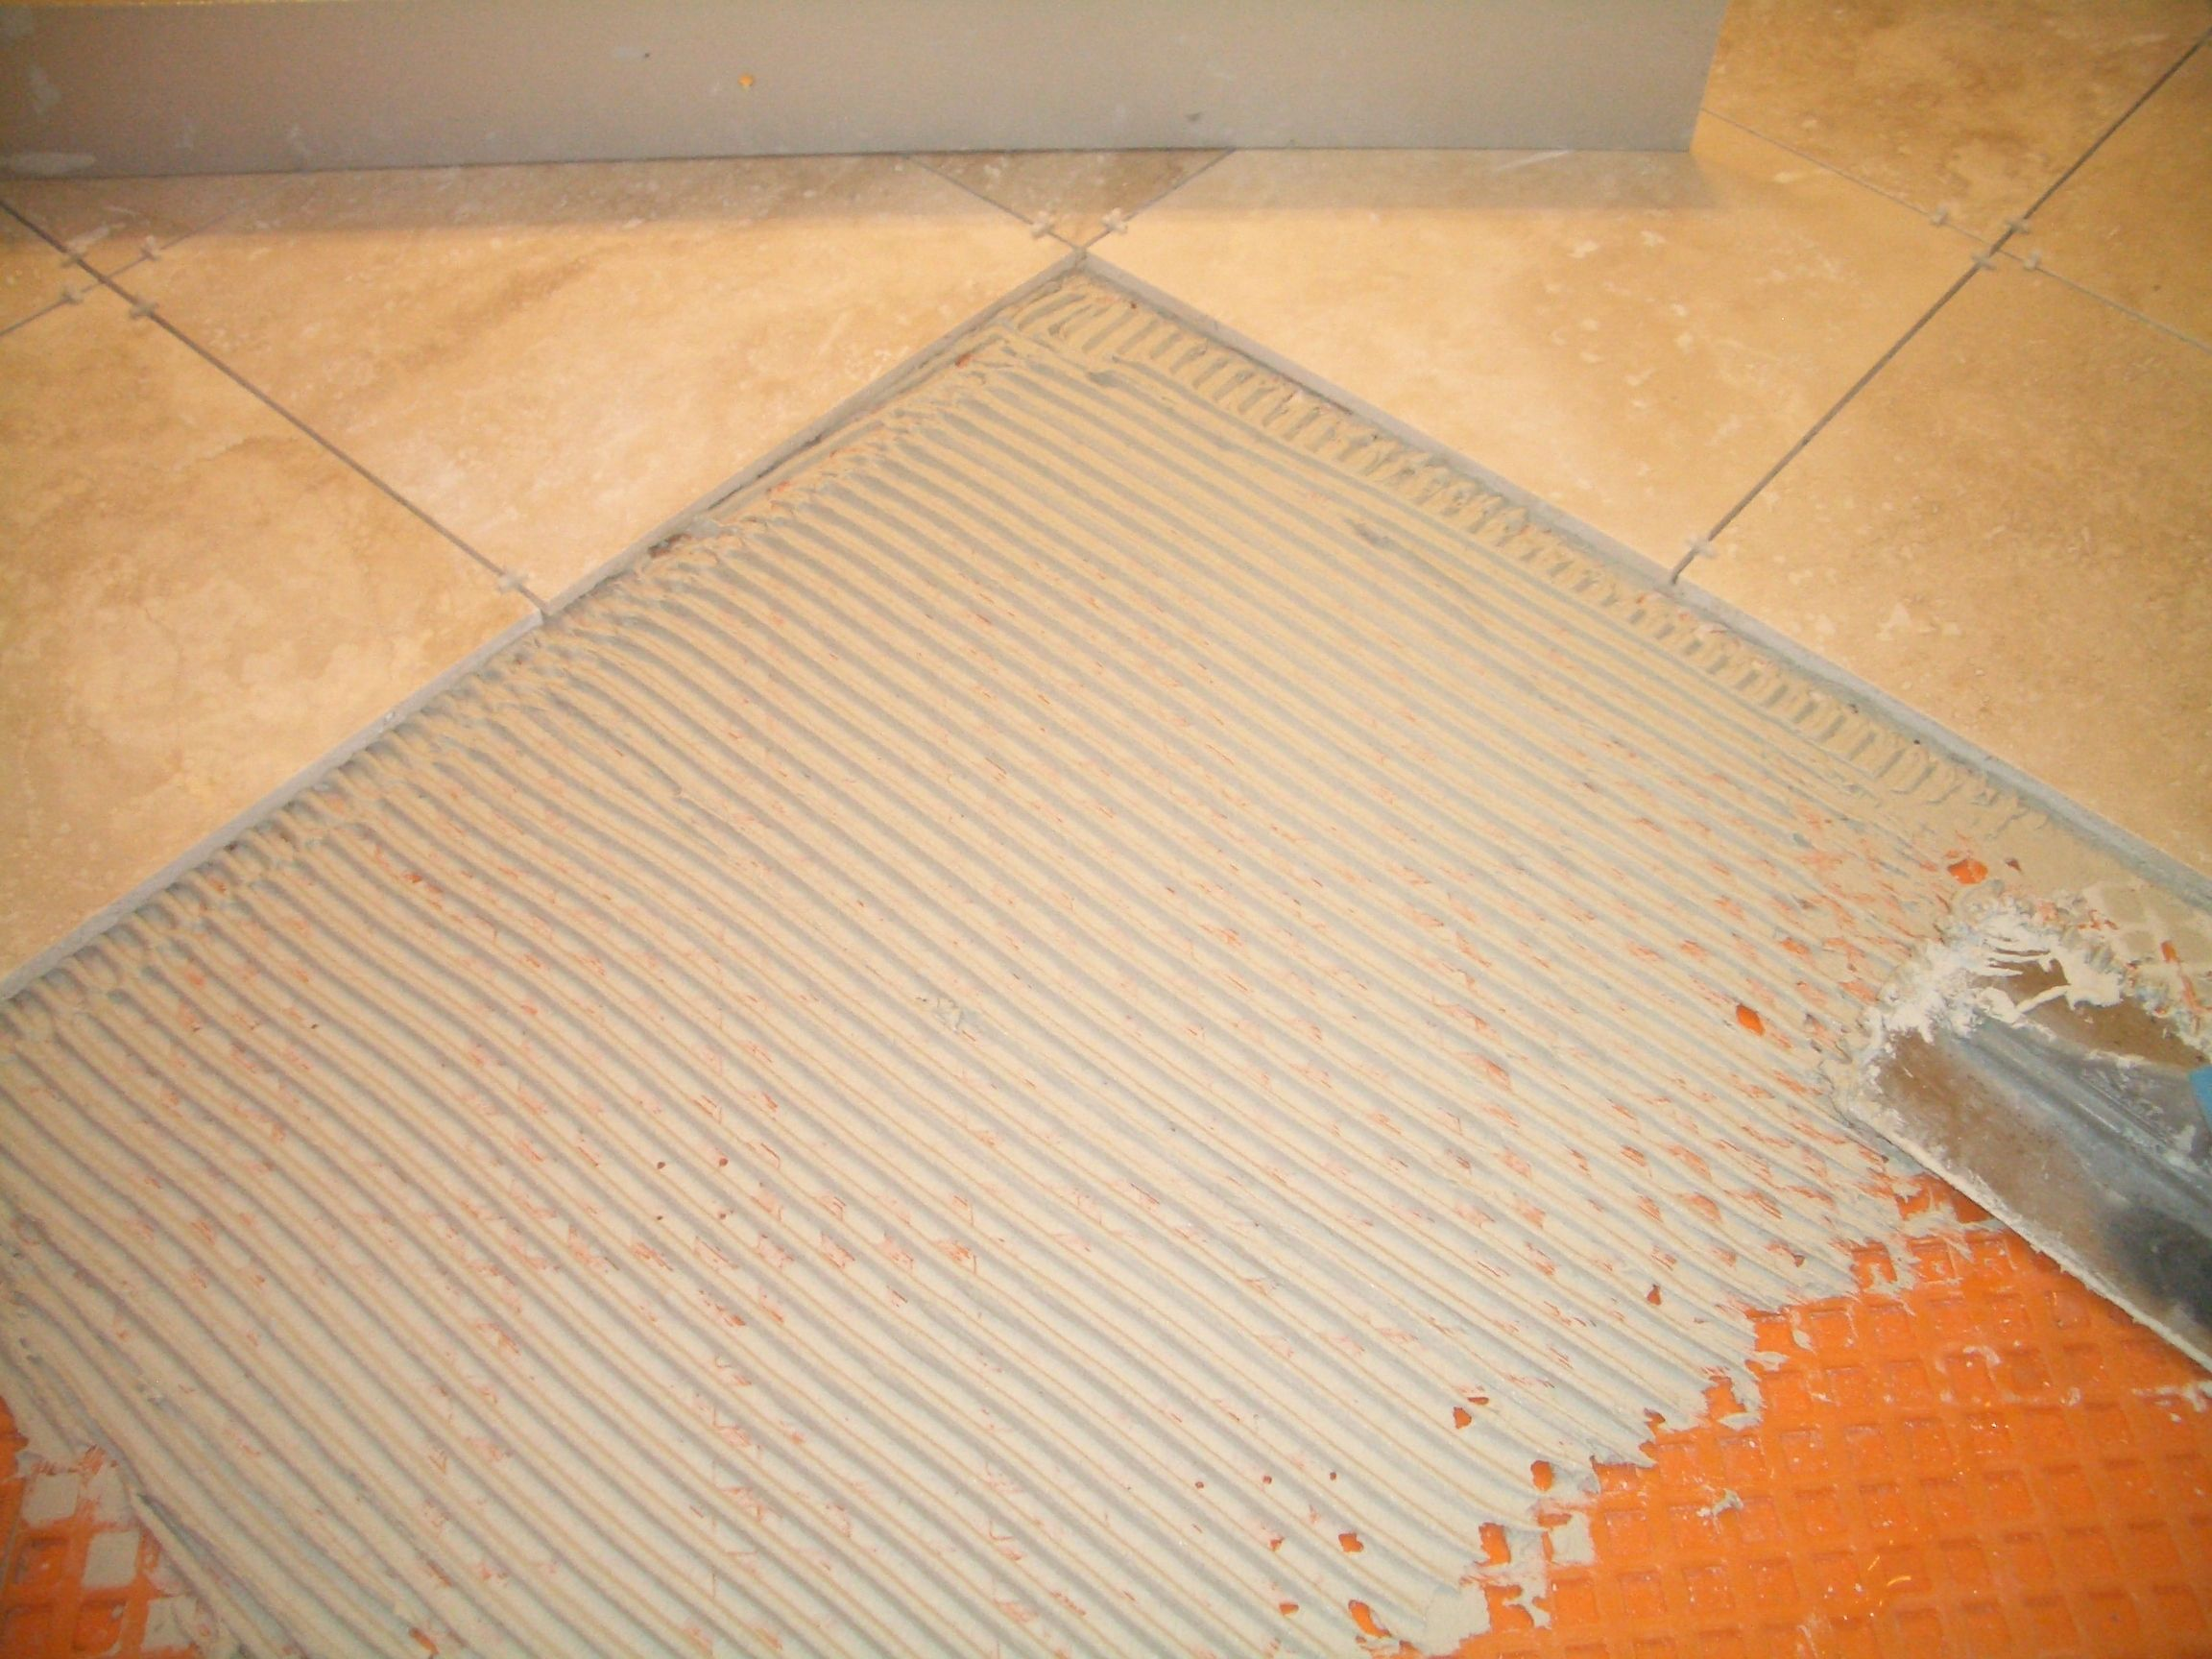 Tile flooring underlayment membrane httpnextsoft21 tile flooring underlayment membrane you will find several points to consider if youre thinking about installing tile floo dailygadgetfo Image collections